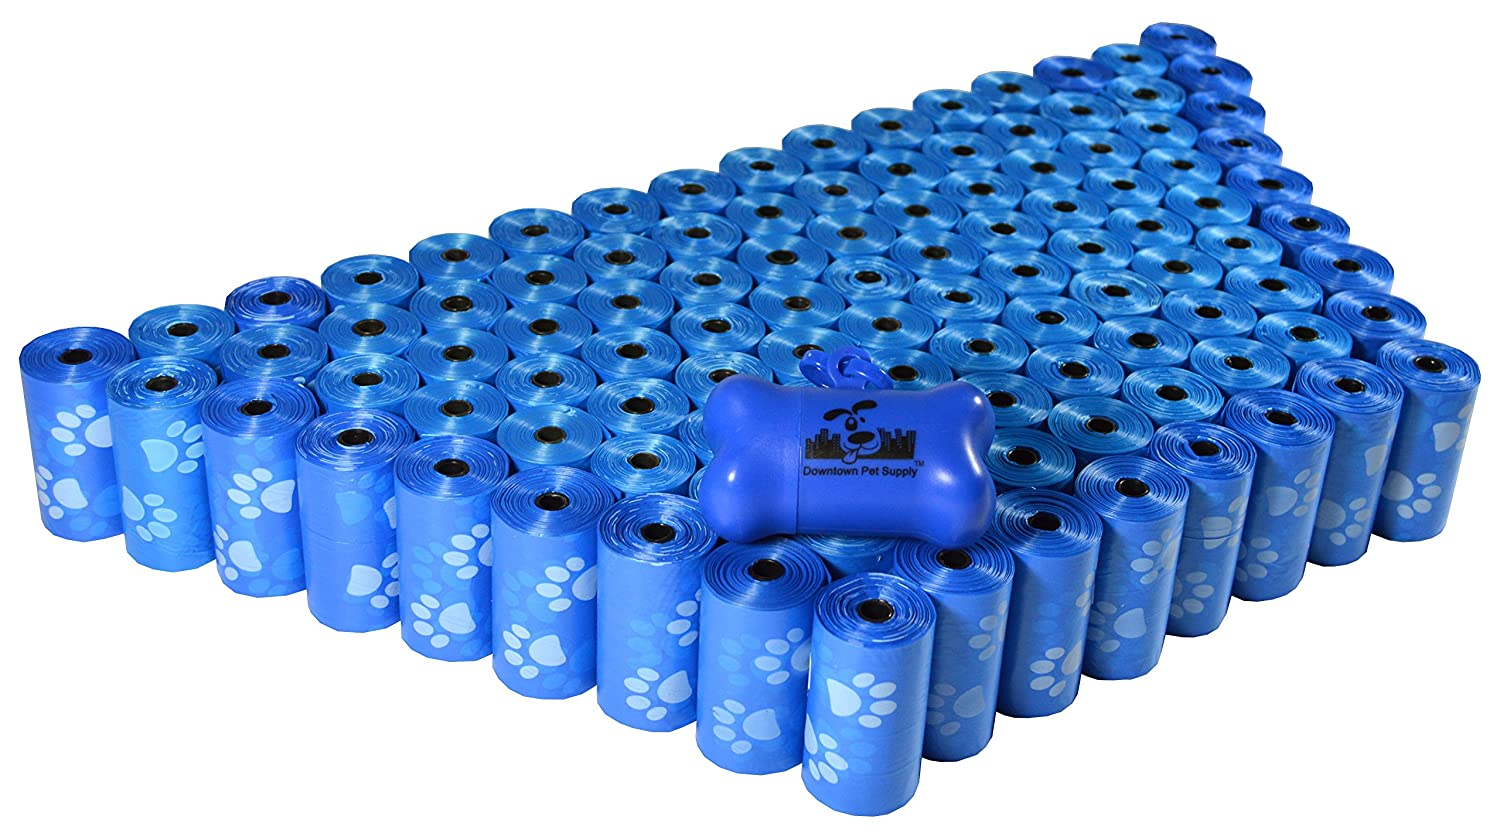 2200 Pet Waste Bags, Dog Waste Bags, Bulk Poop Bags on a roll, Clean up Poop Bag Refills (color  bluee with Paw Prints) + Free Bone Dispenser by Downtown Pet Supply